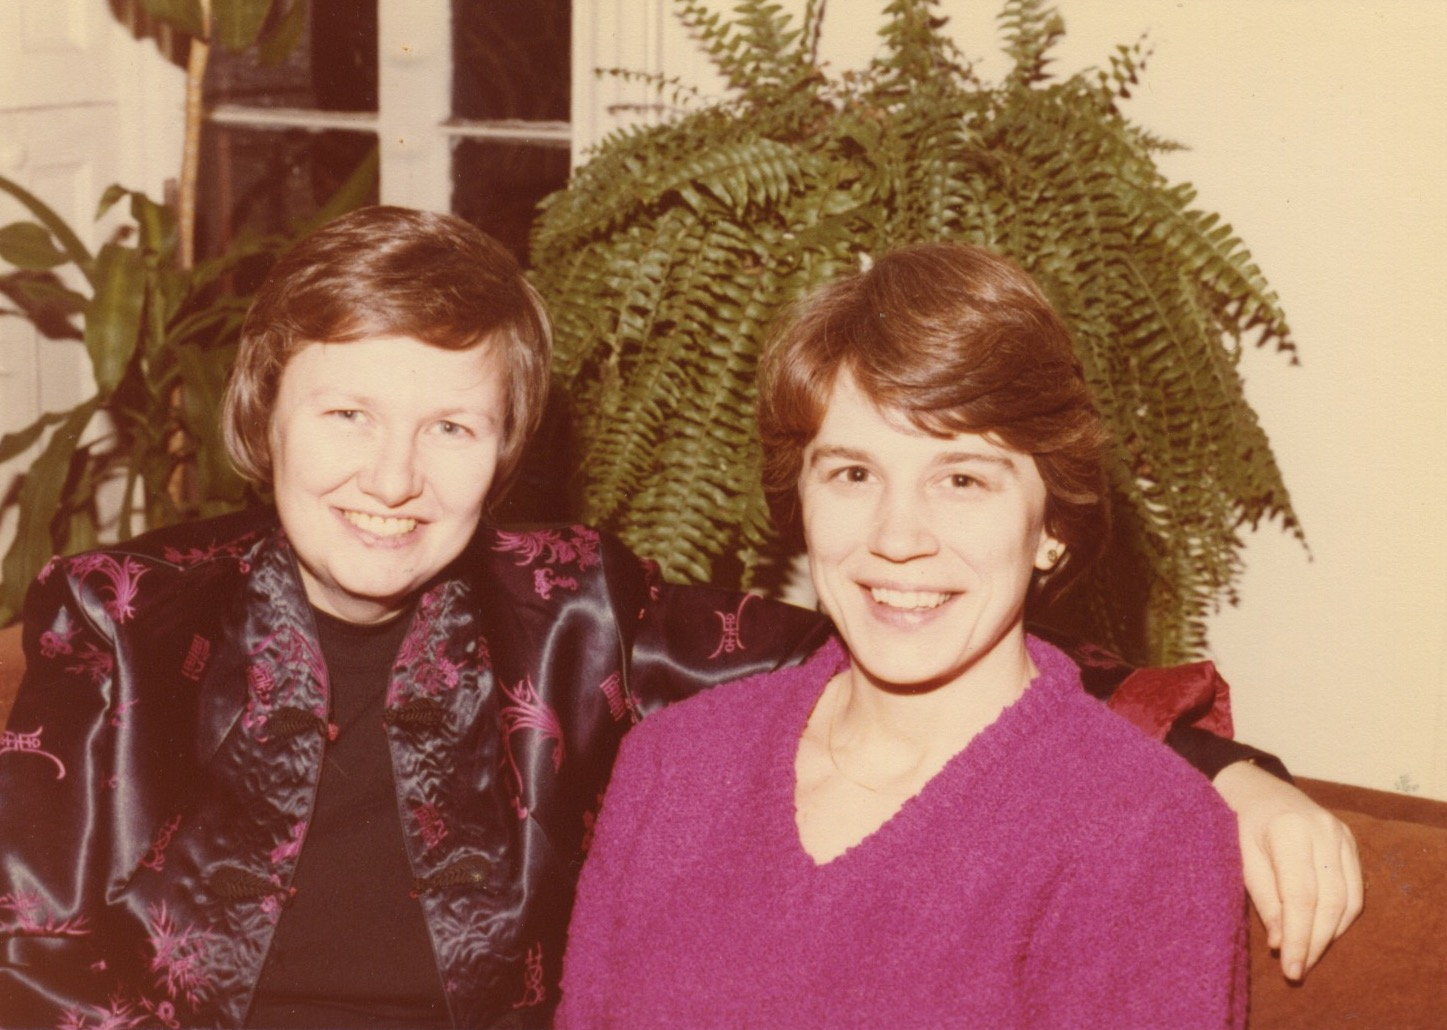 Identity House friends: Sally Cowan and Alice Kraus in 1980. Image courtesy of Lee Zevy.